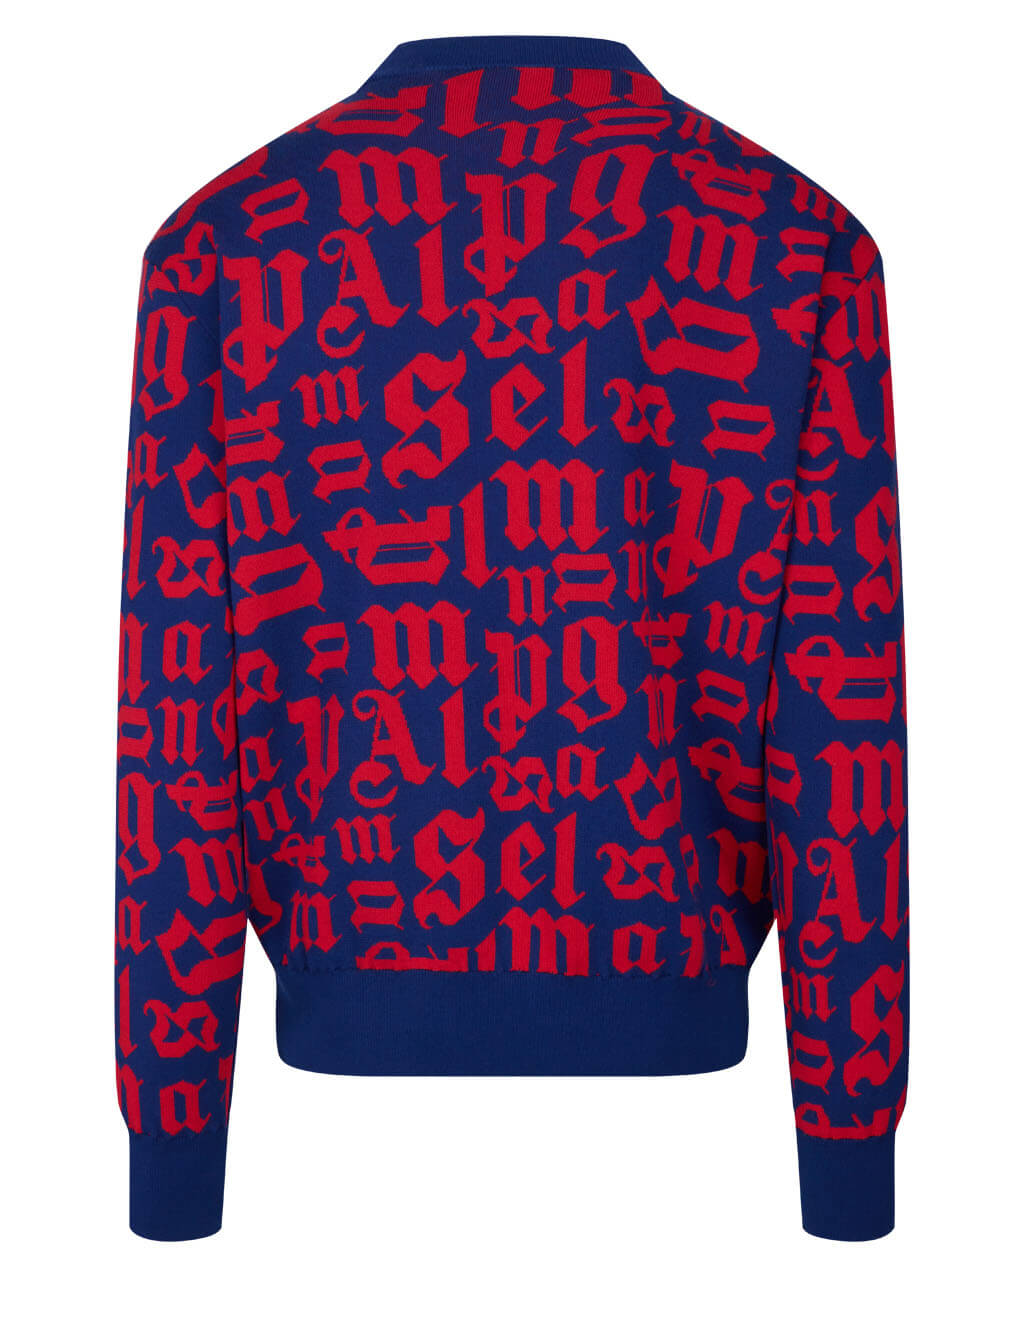 Men's Palm Angels Broken Monogram Jumper in Navy Blue/Red - PMHE013R21KNI0014625